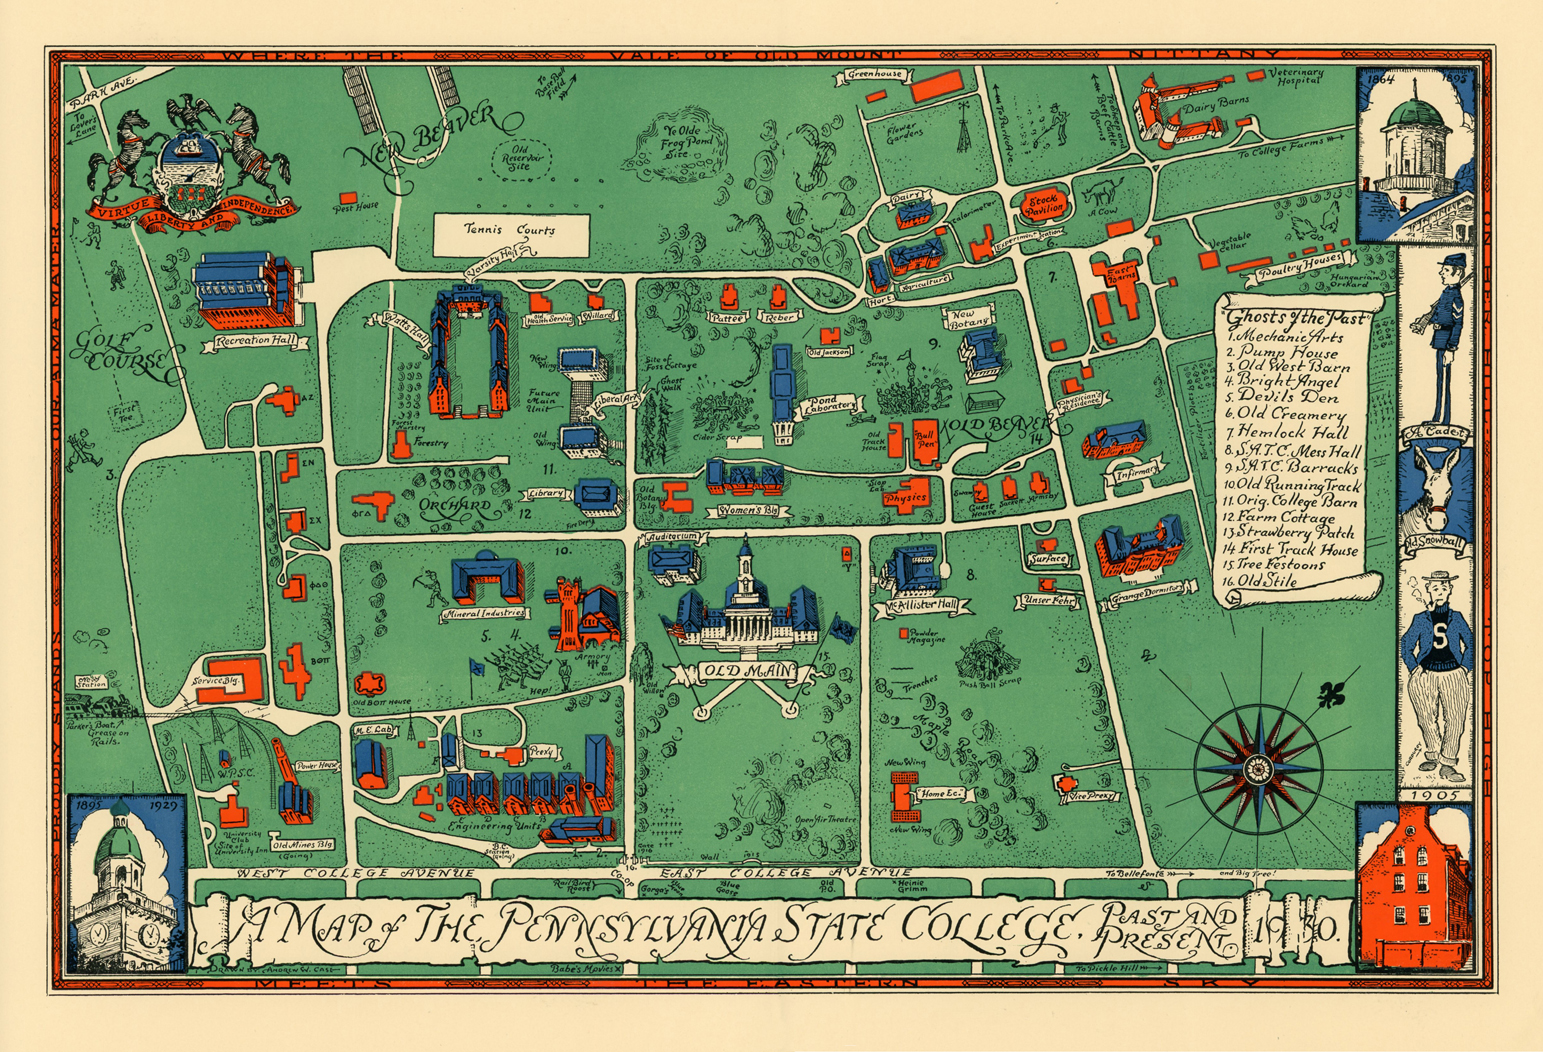 A Cool Map Of Penn State The Penn Stater Magazine - Map of penn